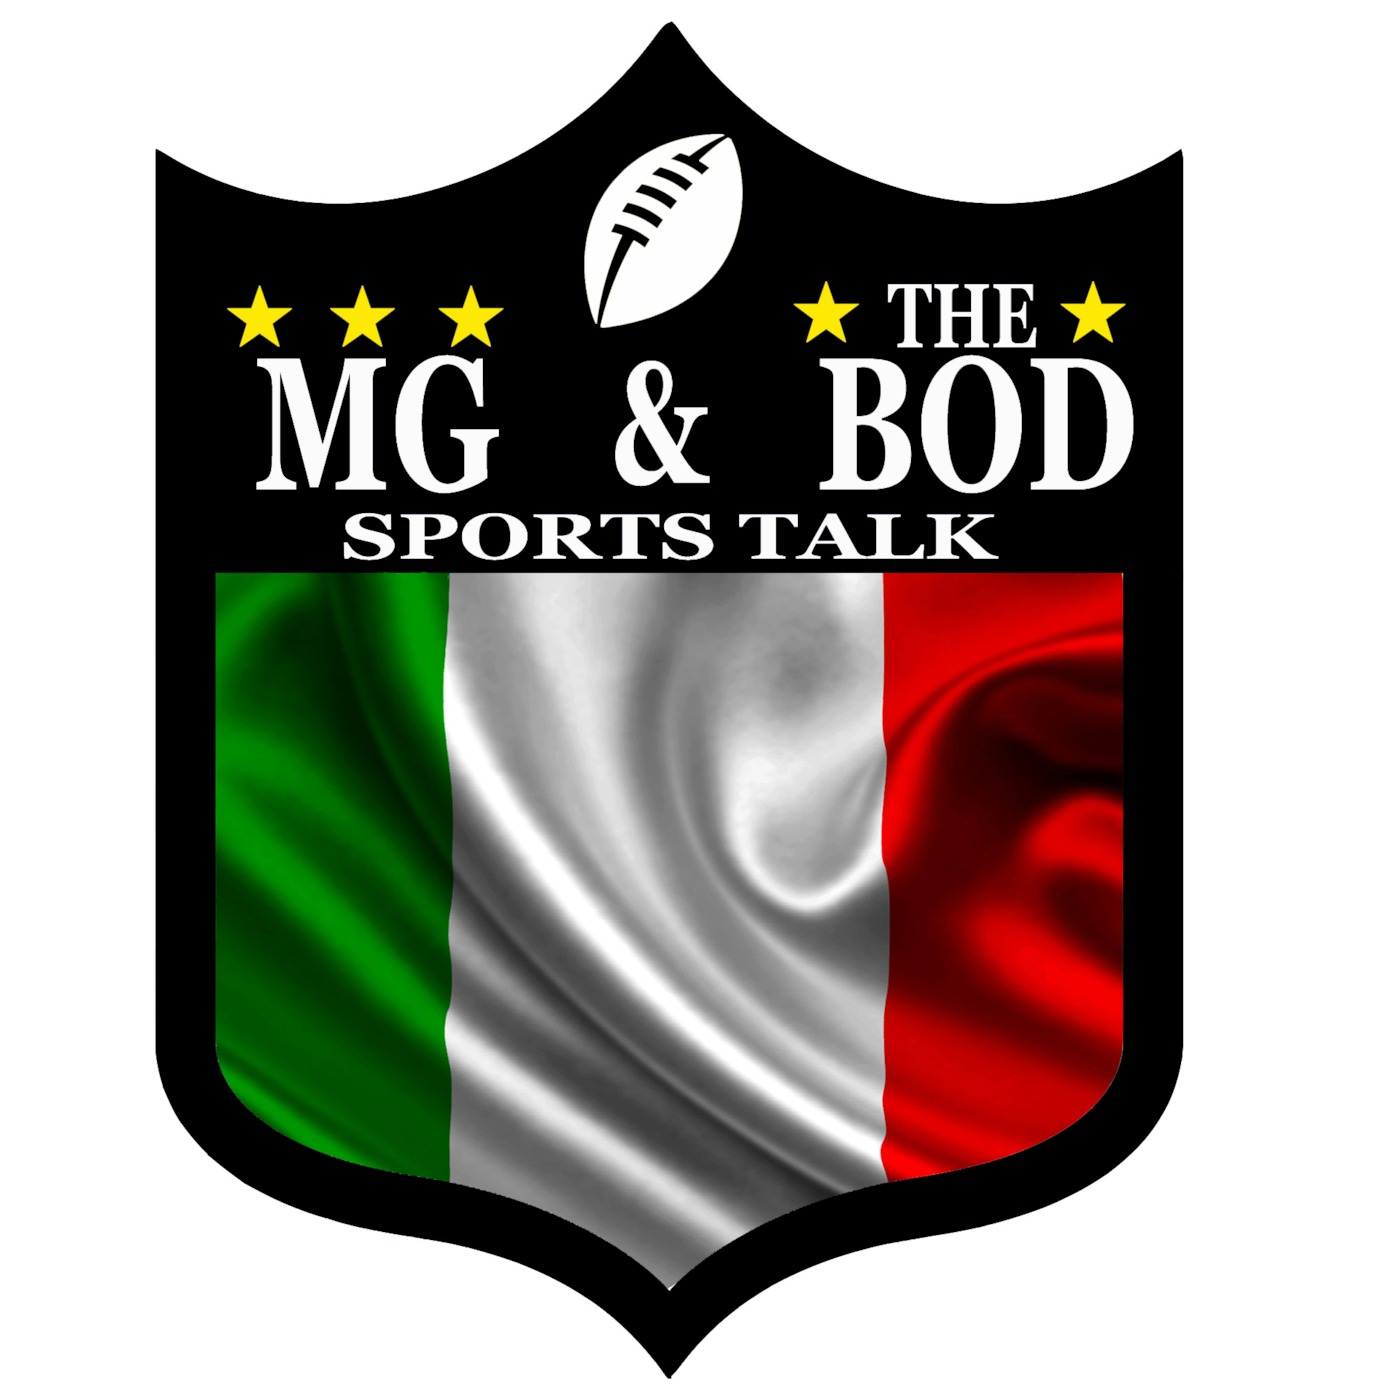 MG and THE BOD's Podcast